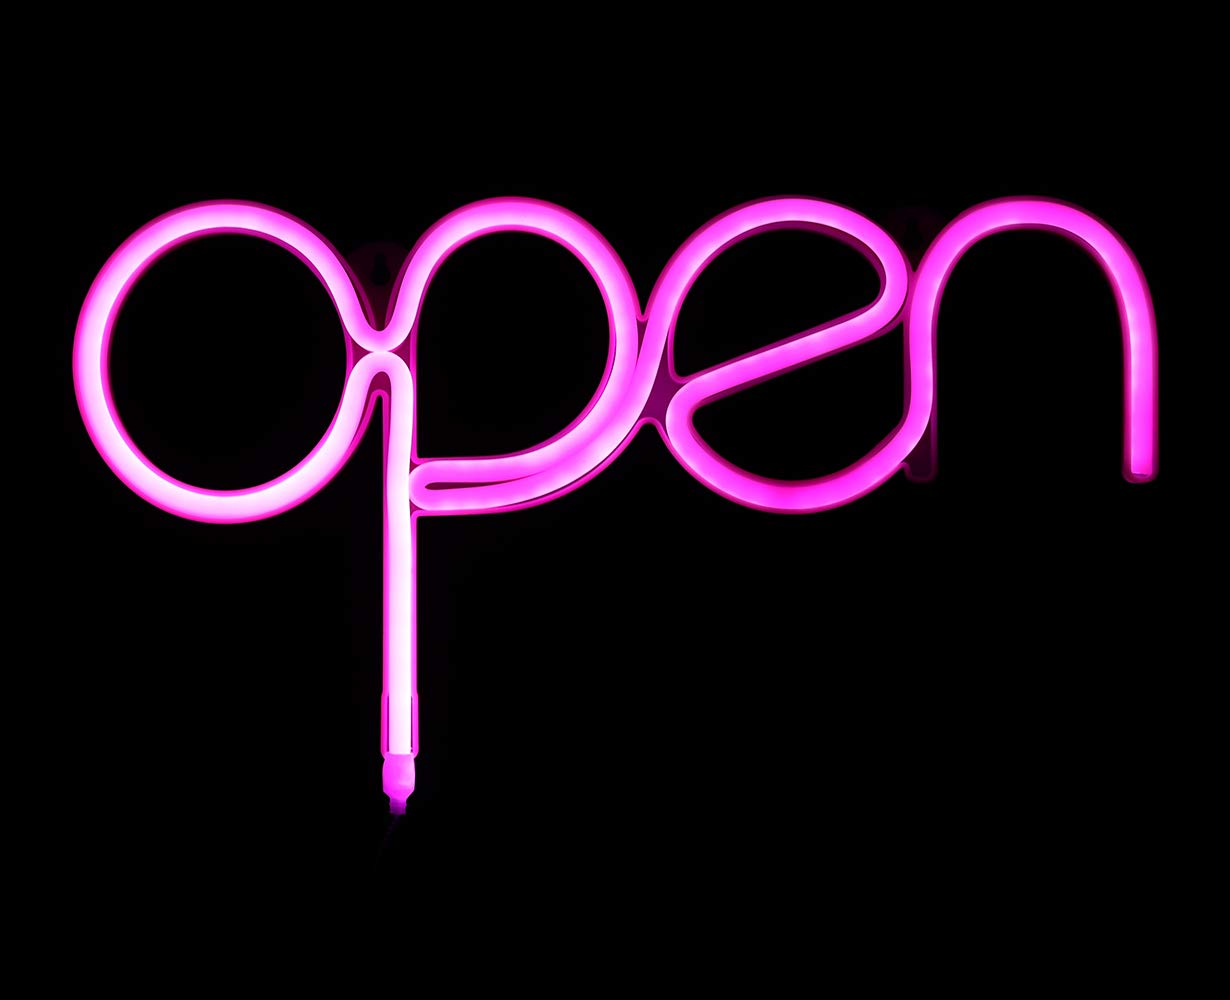 Open Neon Sign for Window Displaying Light 15.5x8.4 inch,Long Cord 11.5 FT LED Green Open Sign for Business,CBD Dispensary,Massage,Tattoo Store,Bar,Man Cave,Barber Shop,Retail Store NEOG